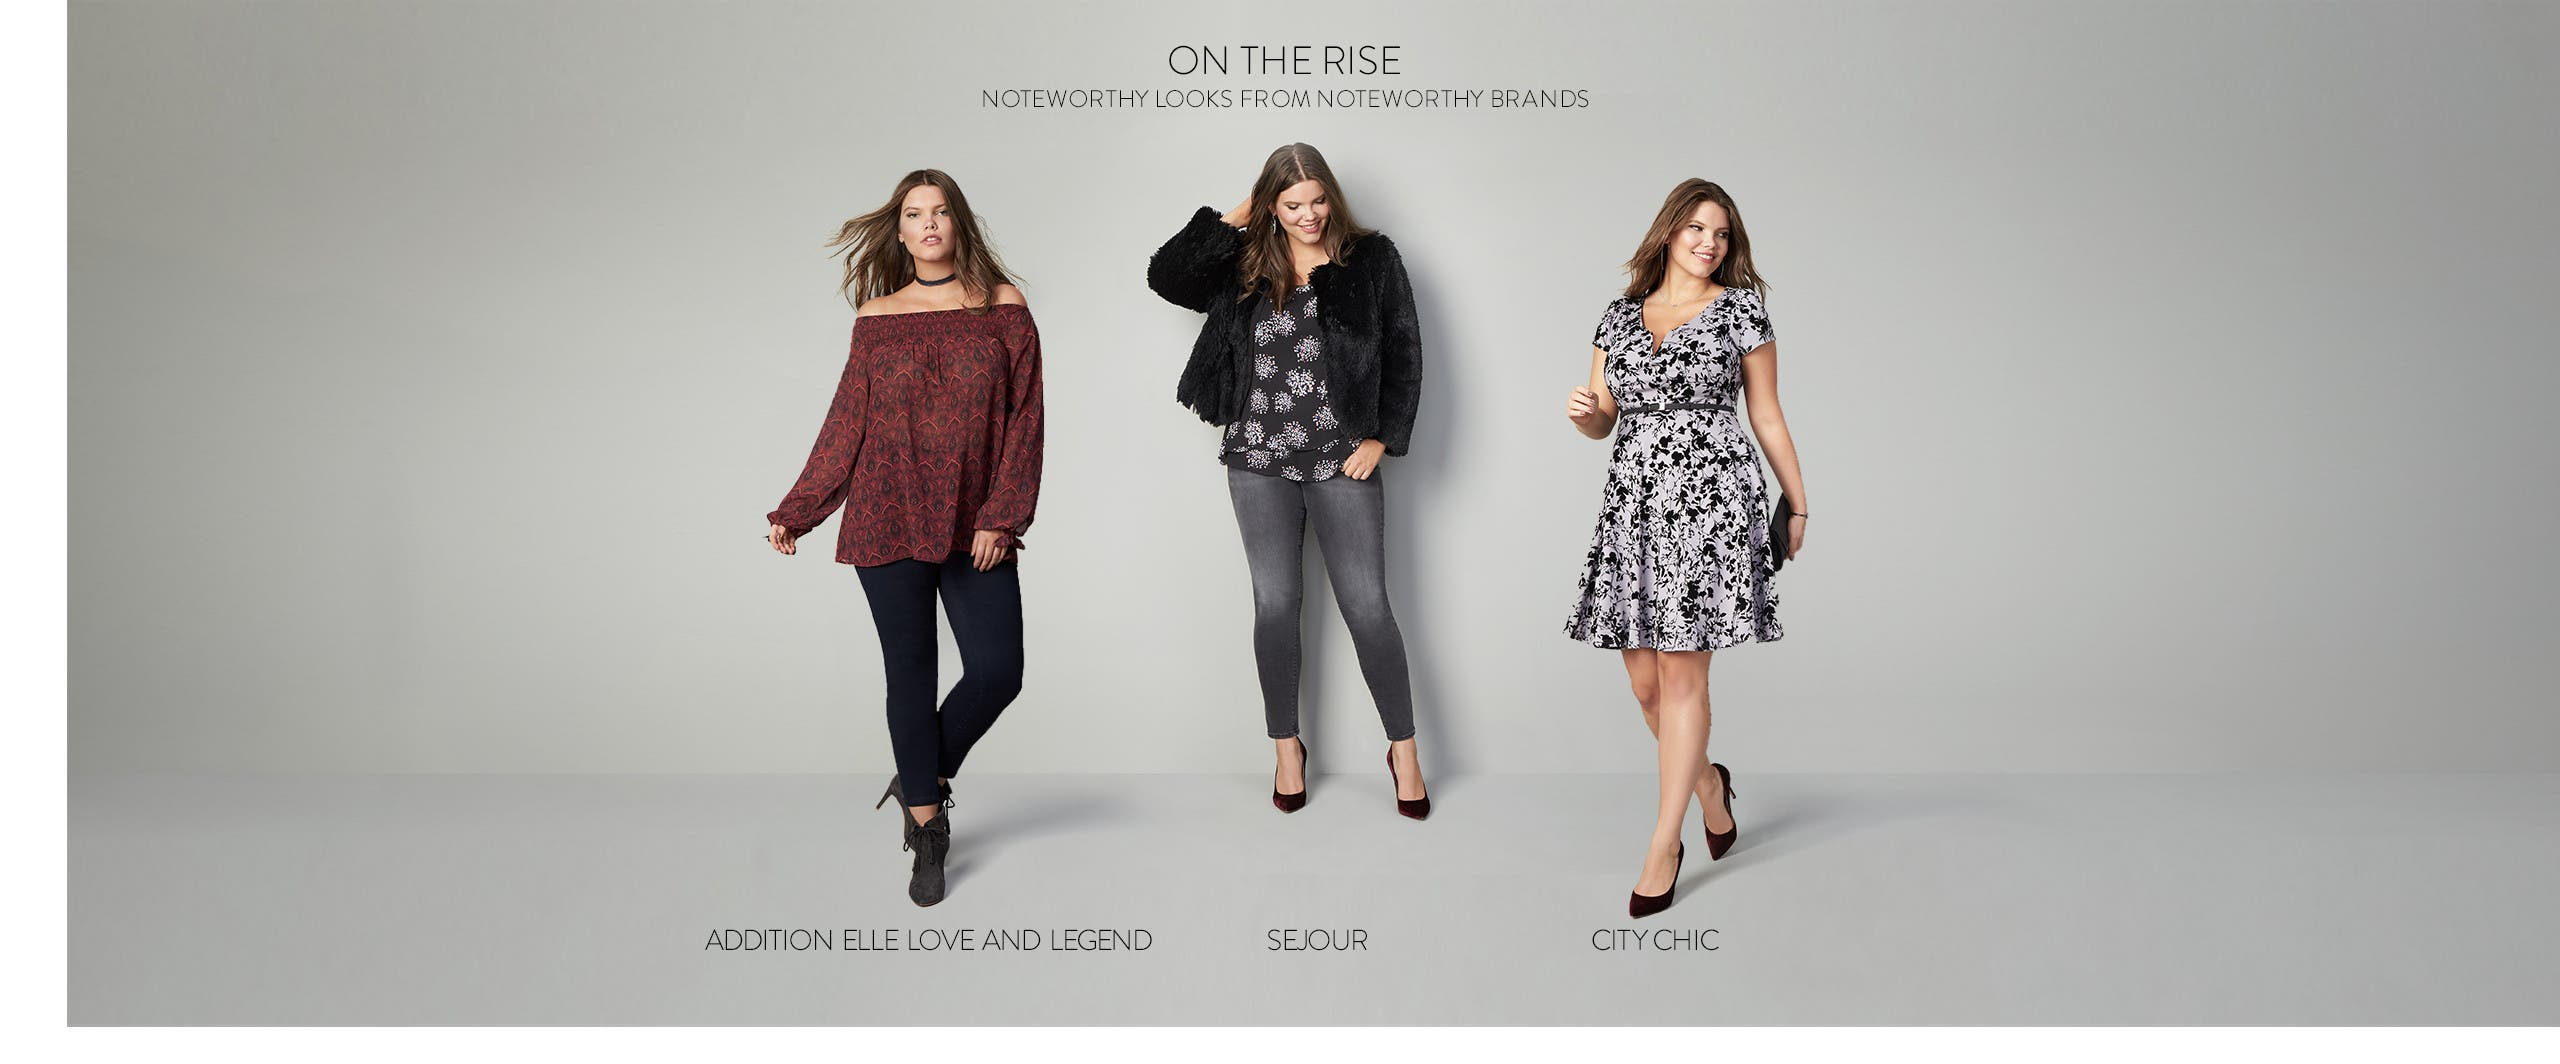 Noteworthy looks from noteworthy brands: ADDITION ELLE LOVE AND LEGEND, Sejour and City Chic.